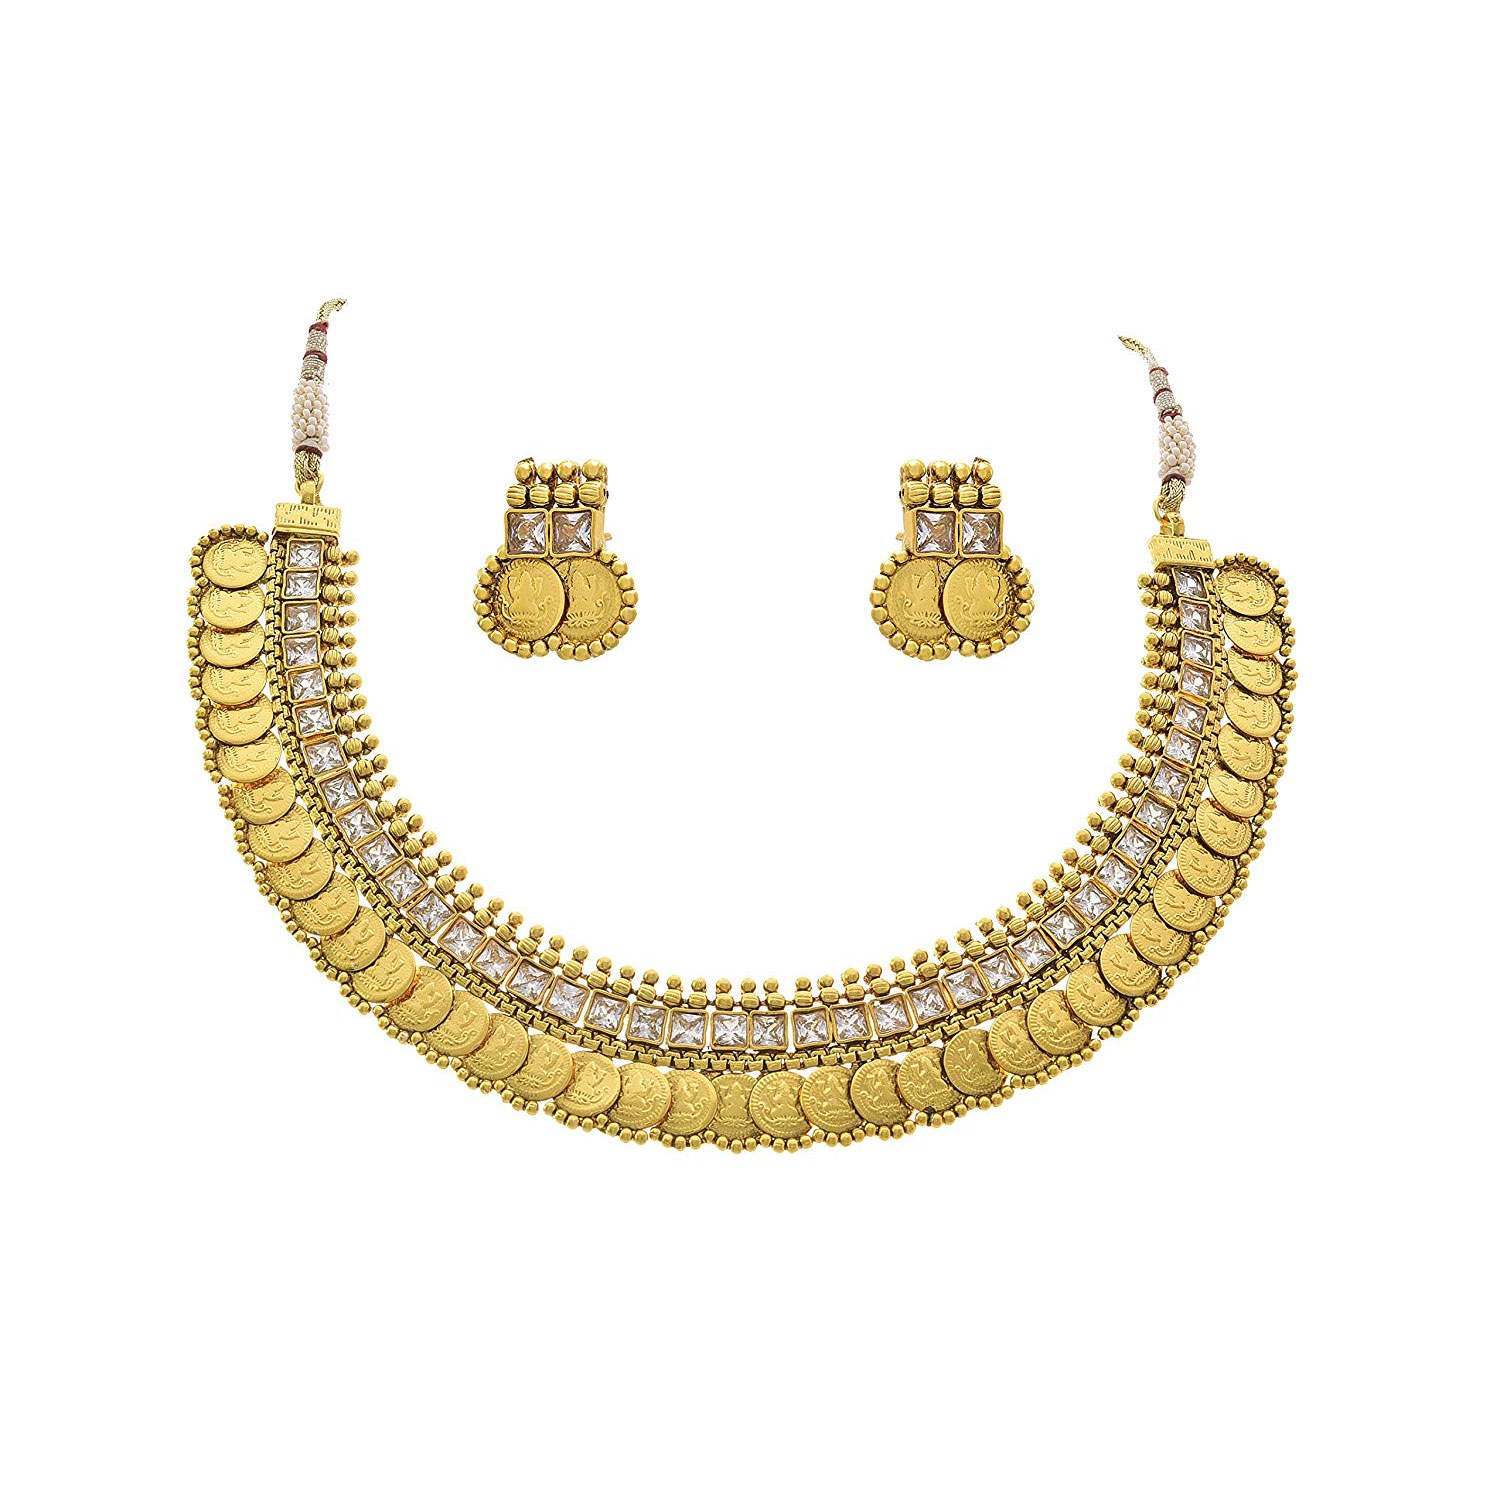 JFL - Traditional Ethnic Temple Laxmi Goddess Coin One Gram Gold Plated Diamond Designer Necklace Set for Women and Girls